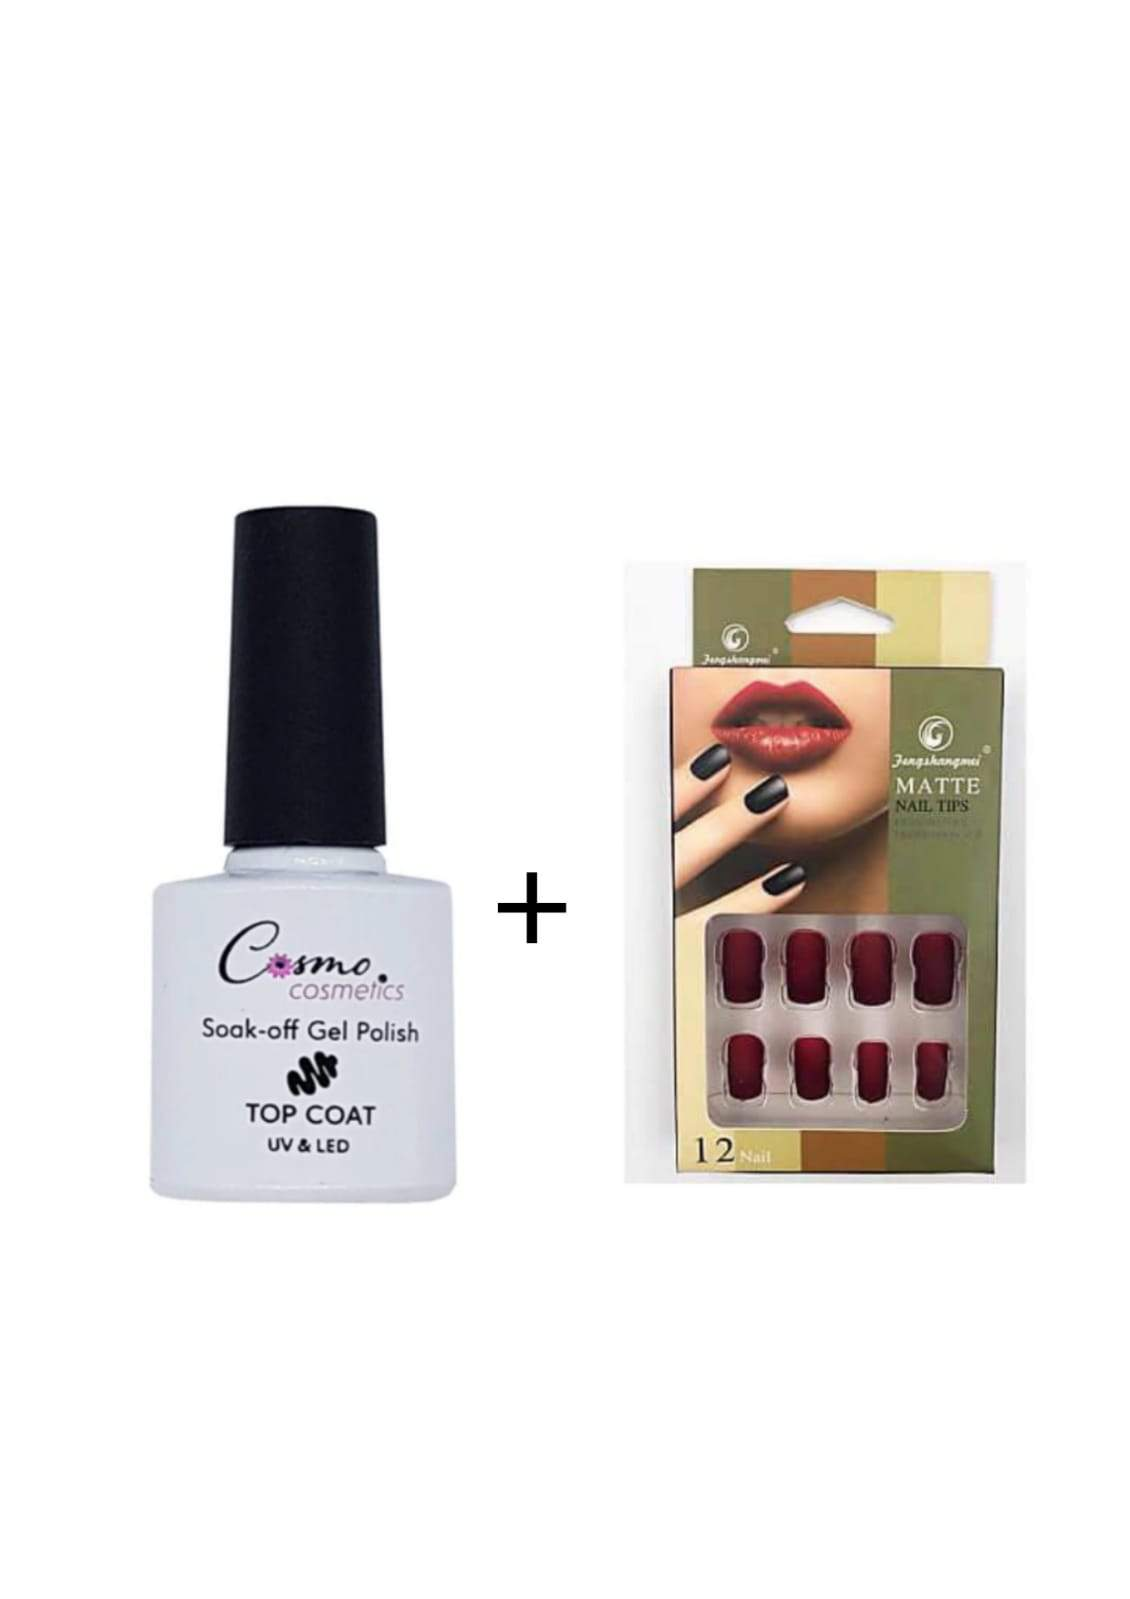 Cosmo Gel Top Coat (Soak Off Gel) 7ml + Matte 12 Nails - Greatest deals